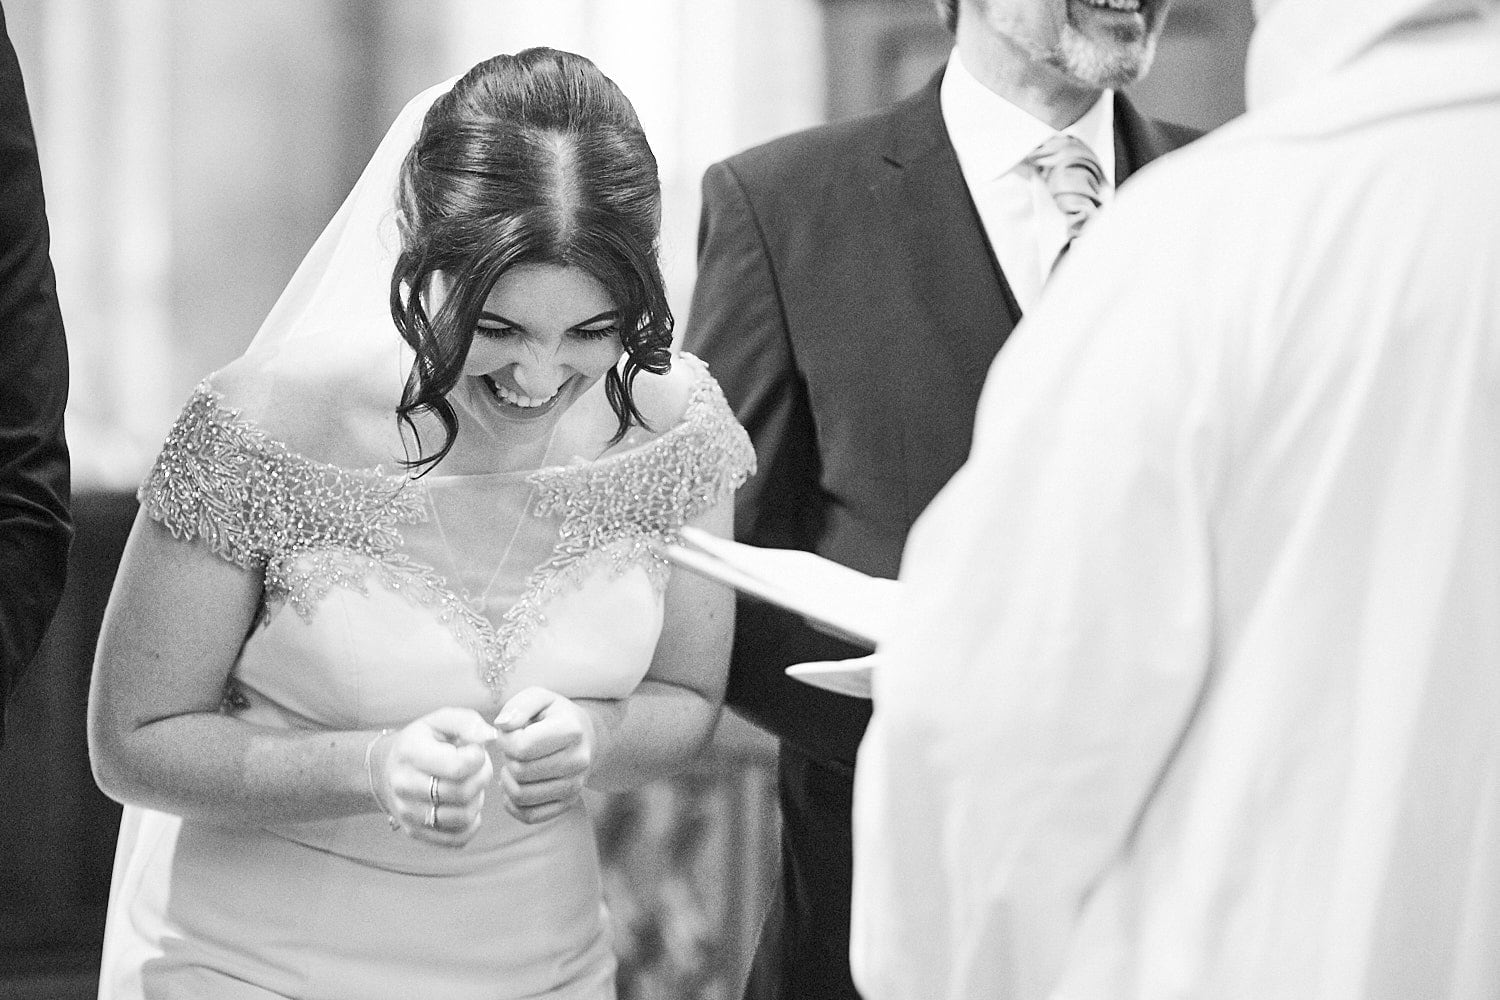 A bride gets the giggles in the church on her wedding day